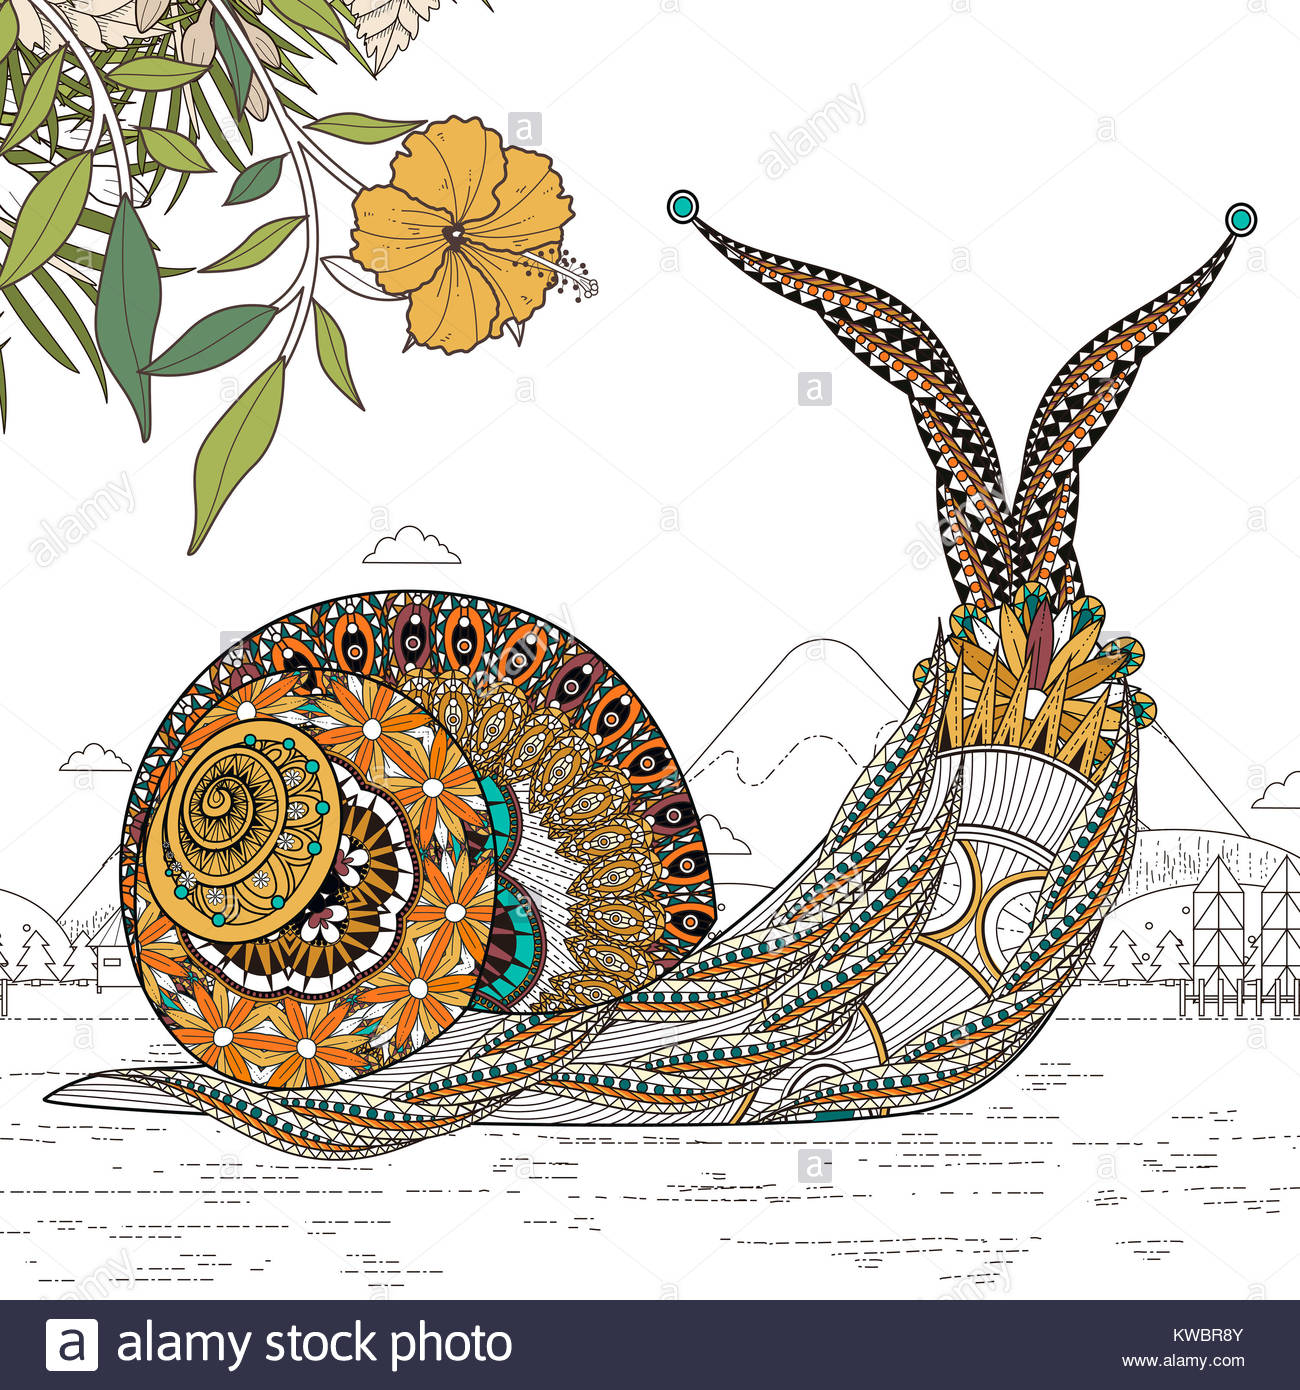 Elegant Snail Coloring Page In Exquisite Line